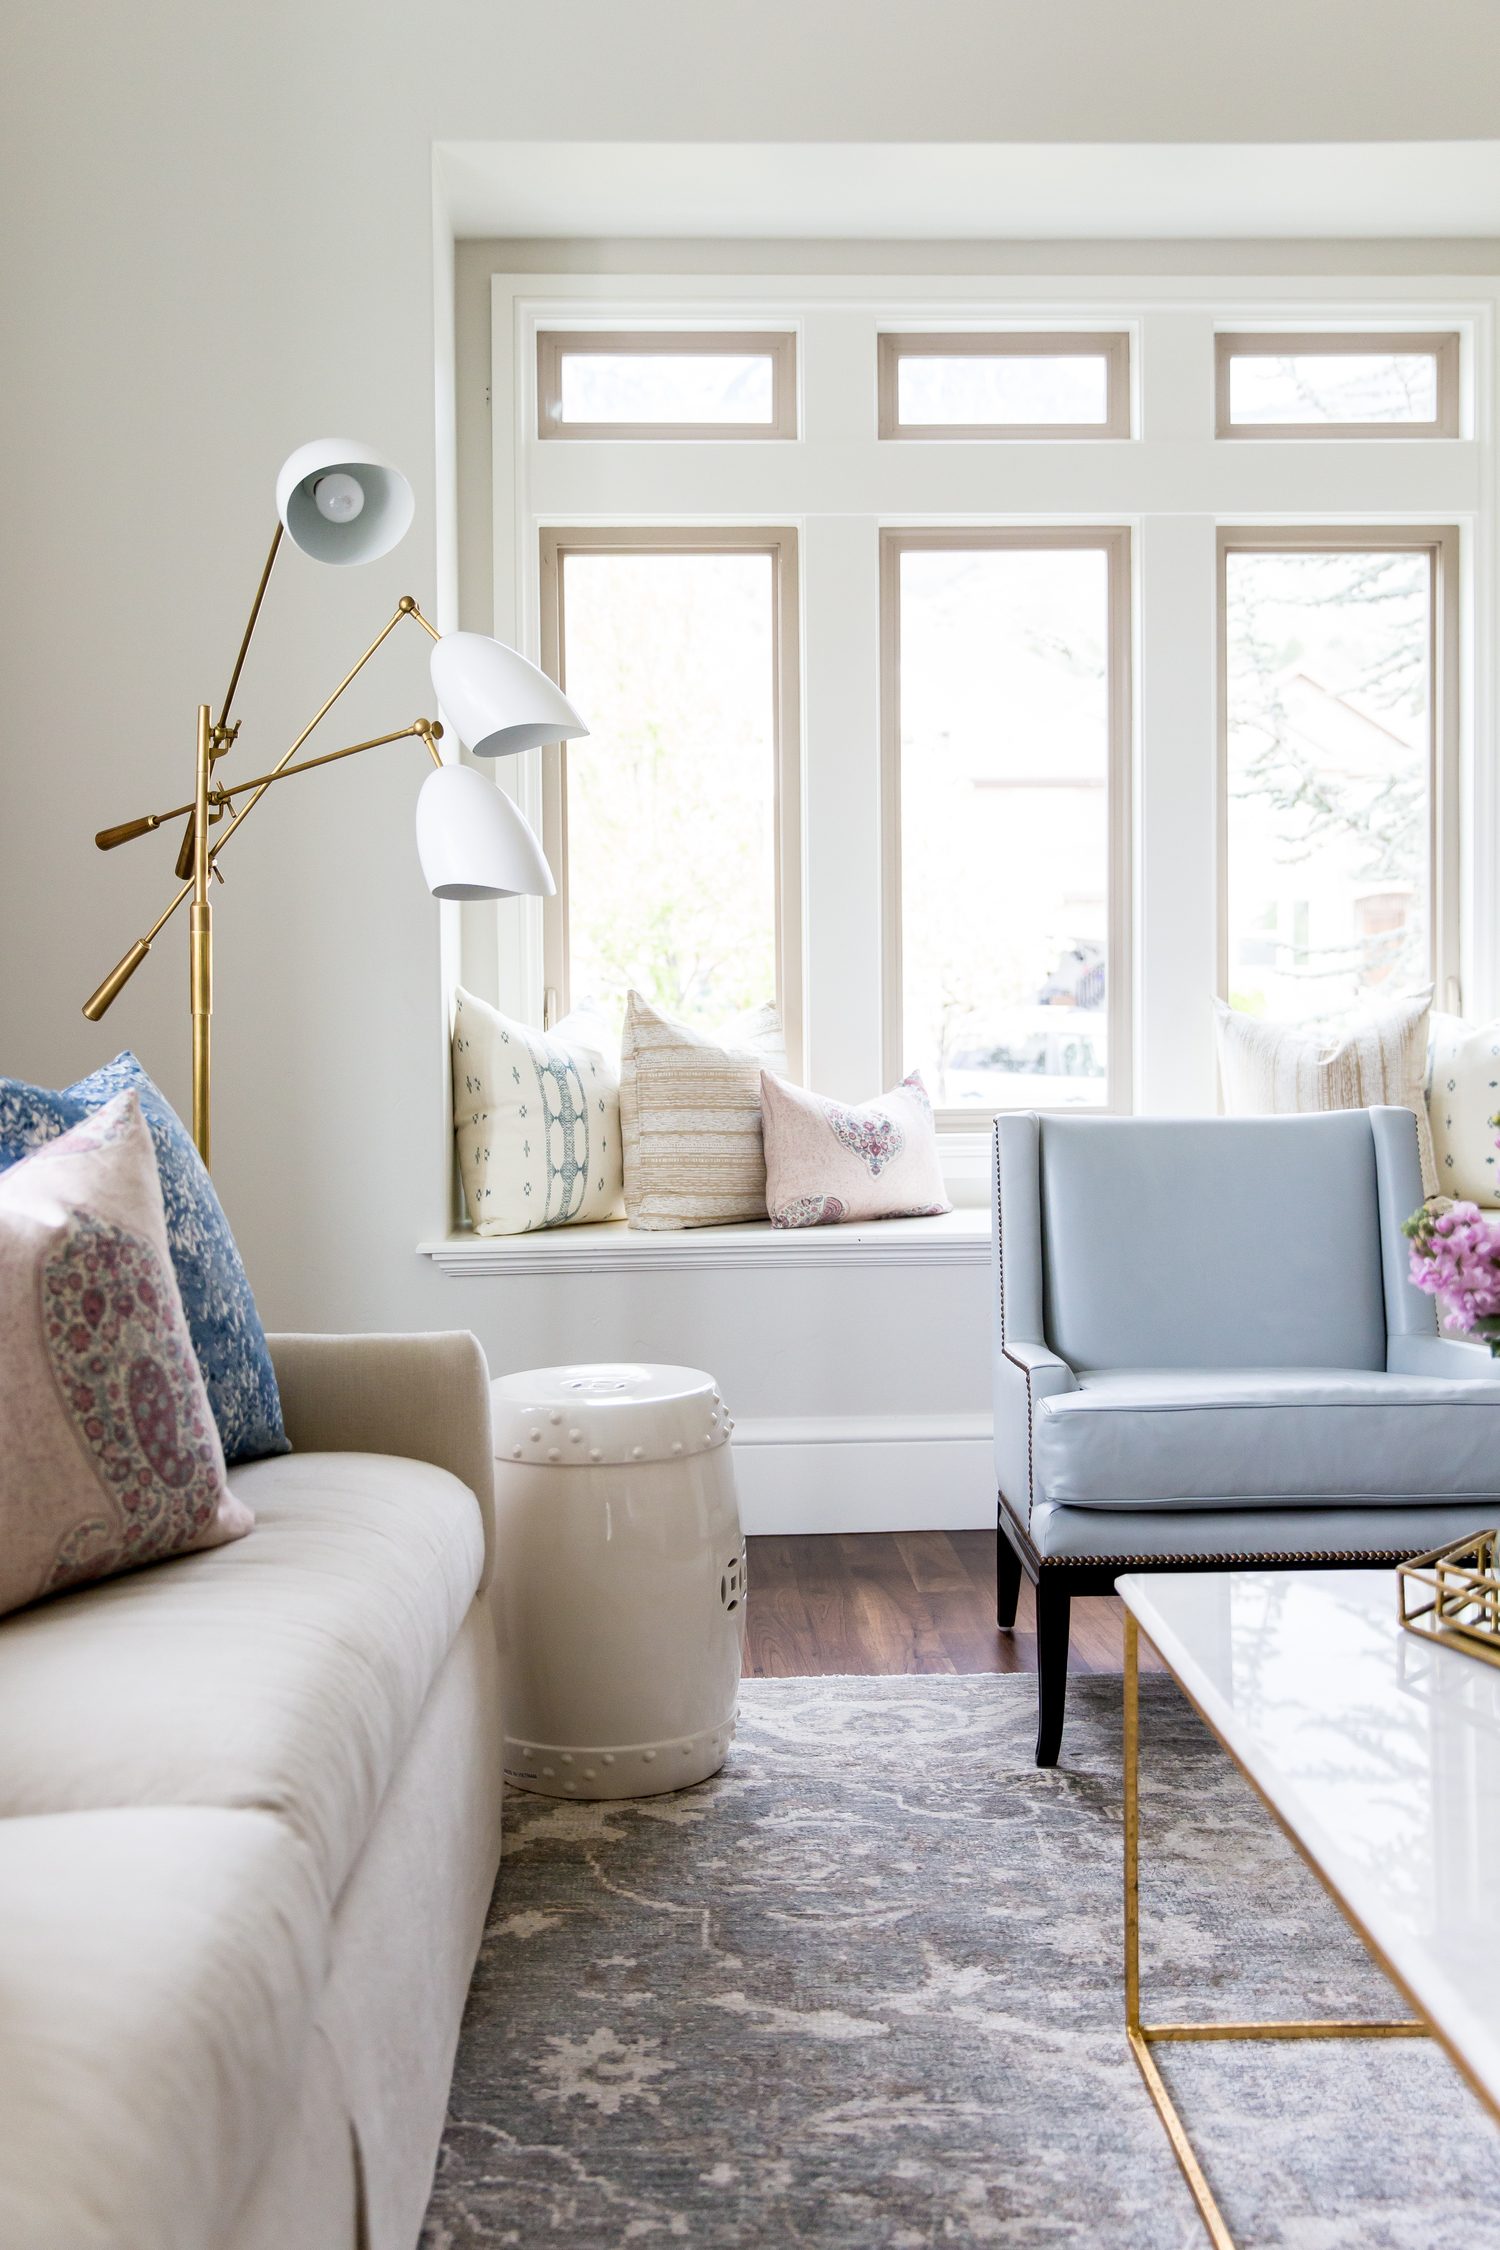 Blue chair in front of built in daybed